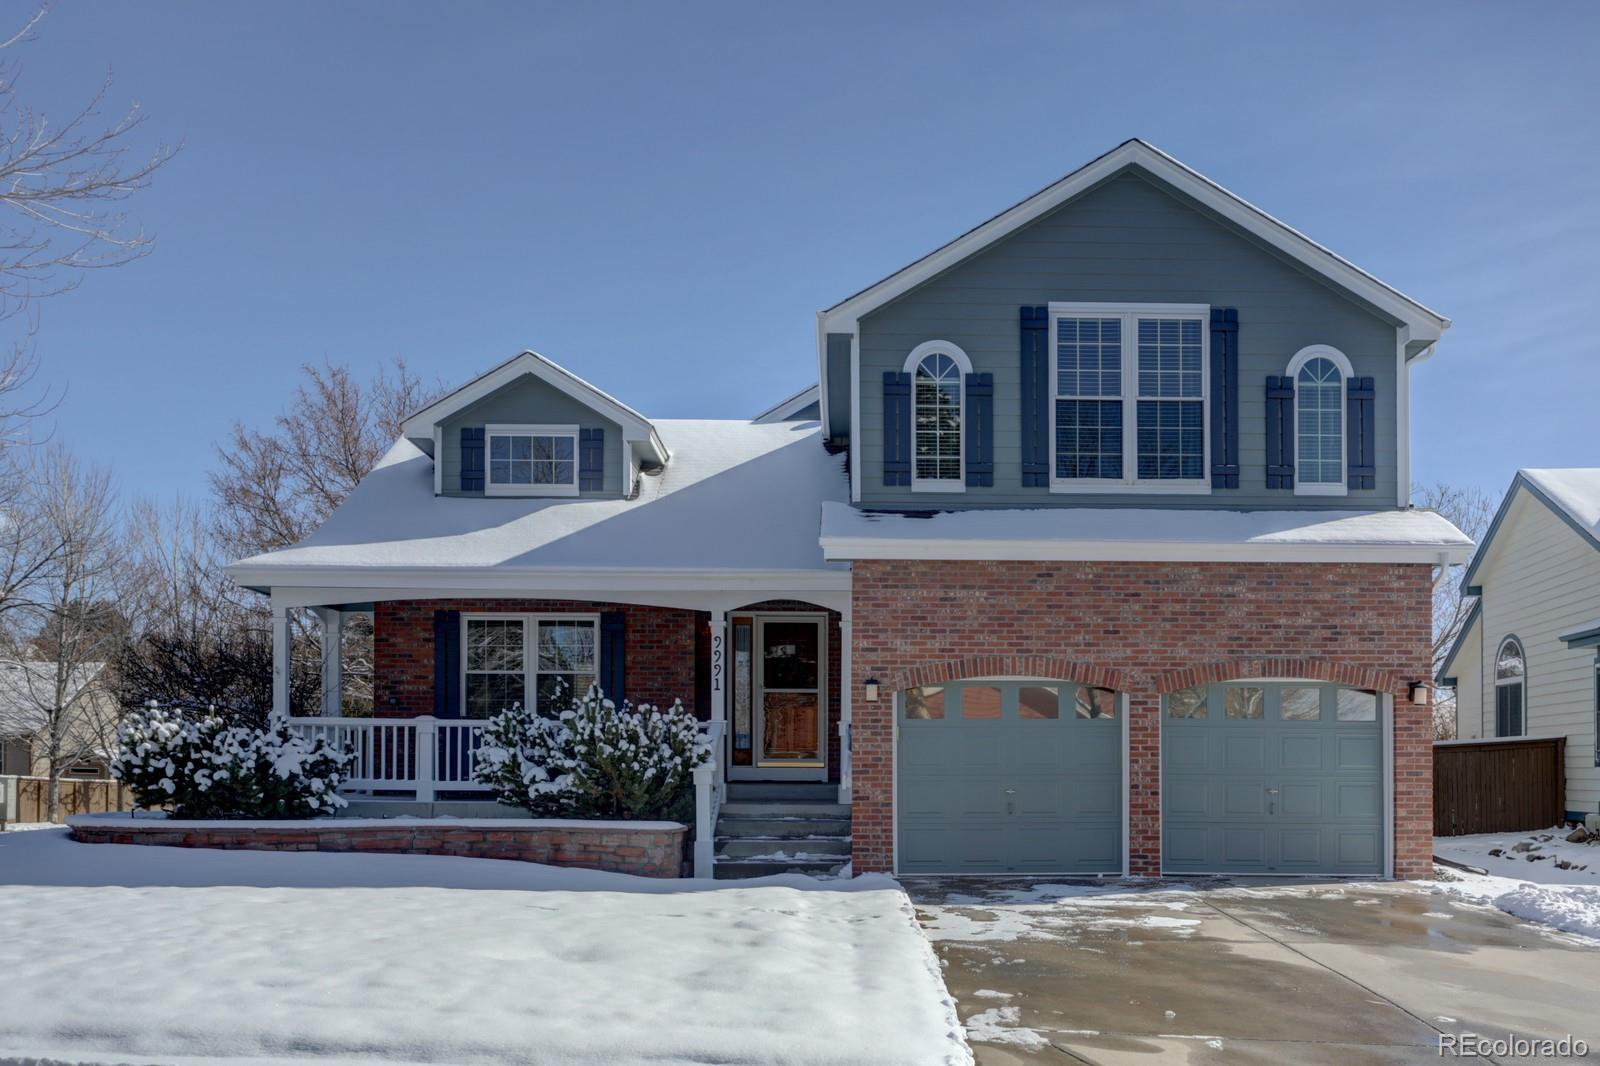 MLS# 5985159 - 37 - 9991 Spring Hill Place, Highlands Ranch, CO 80129